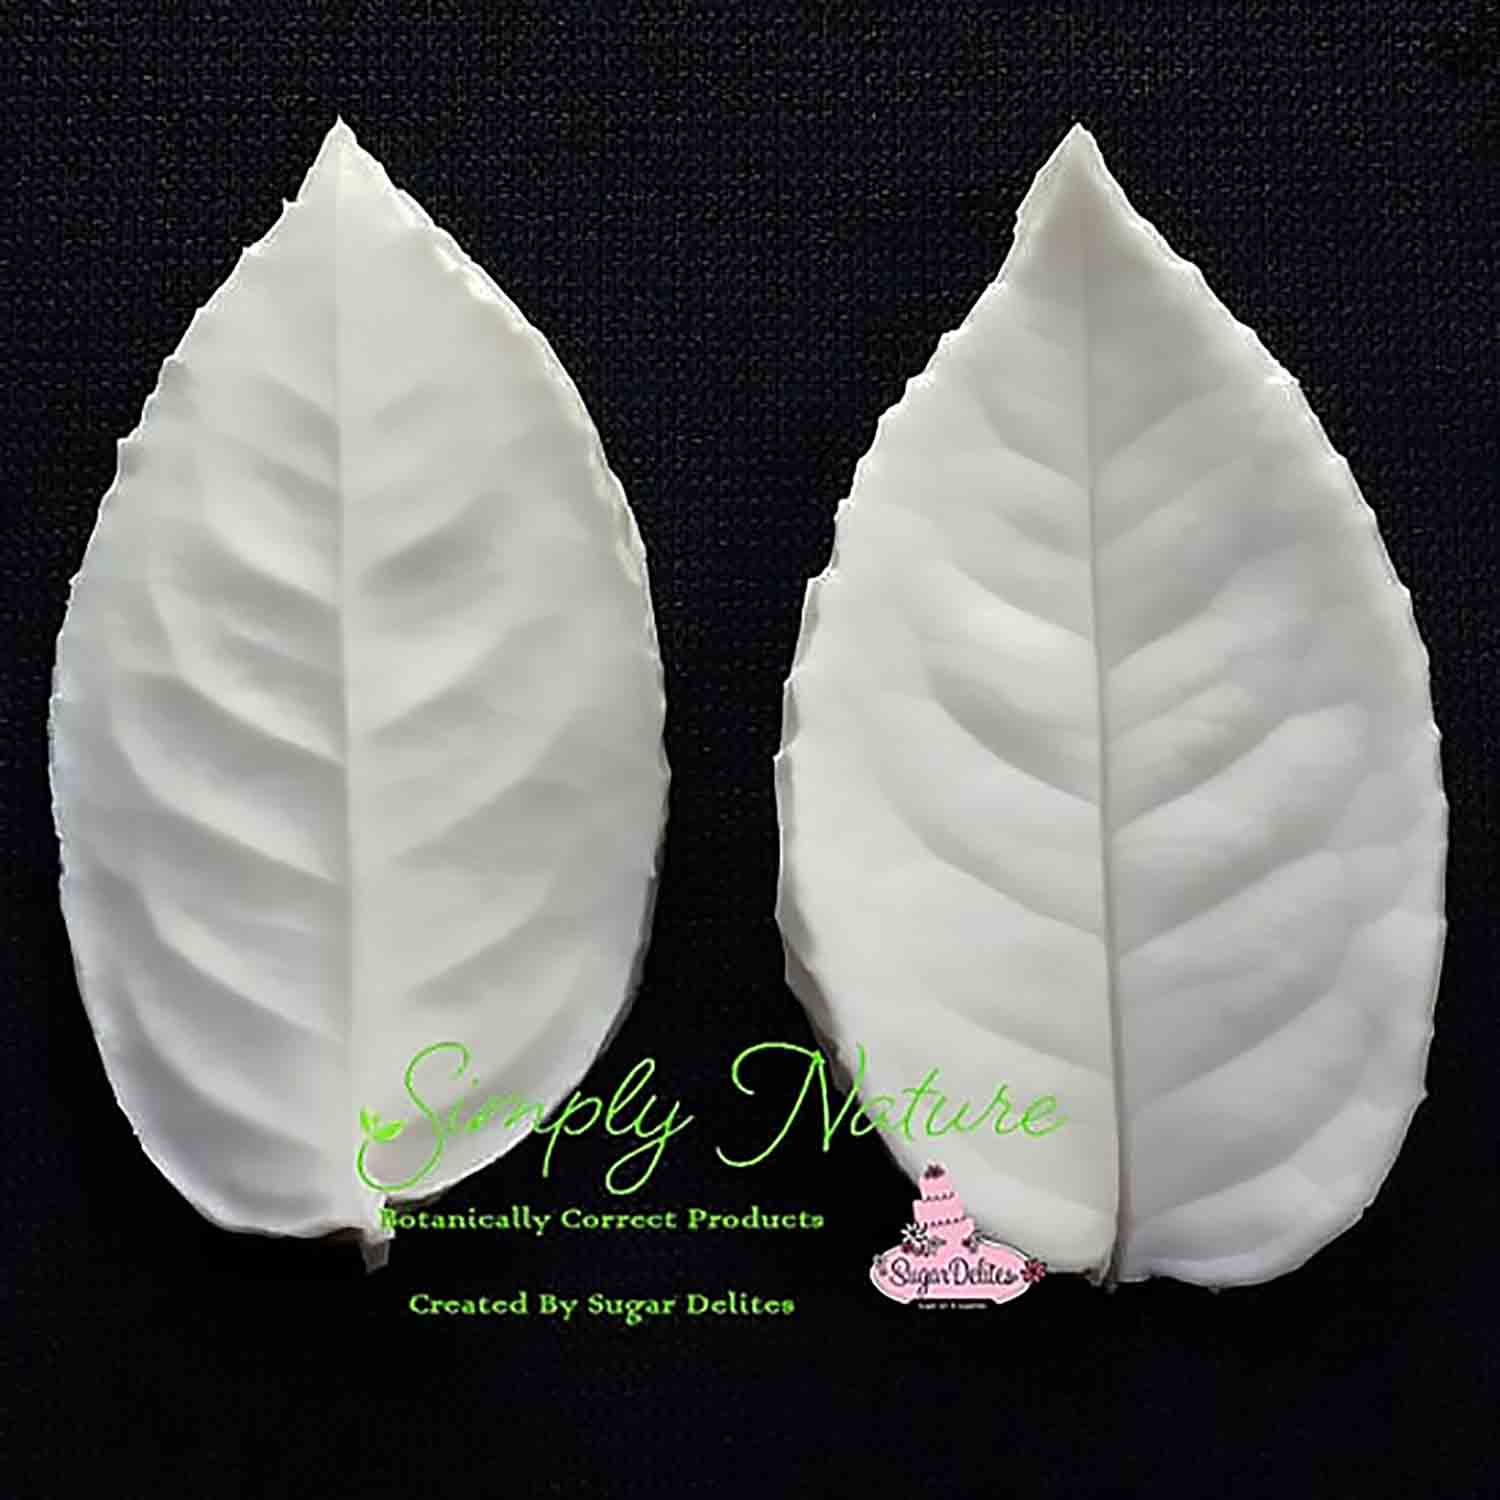 Medium Rose Leaf Simply Nature Veiner Set